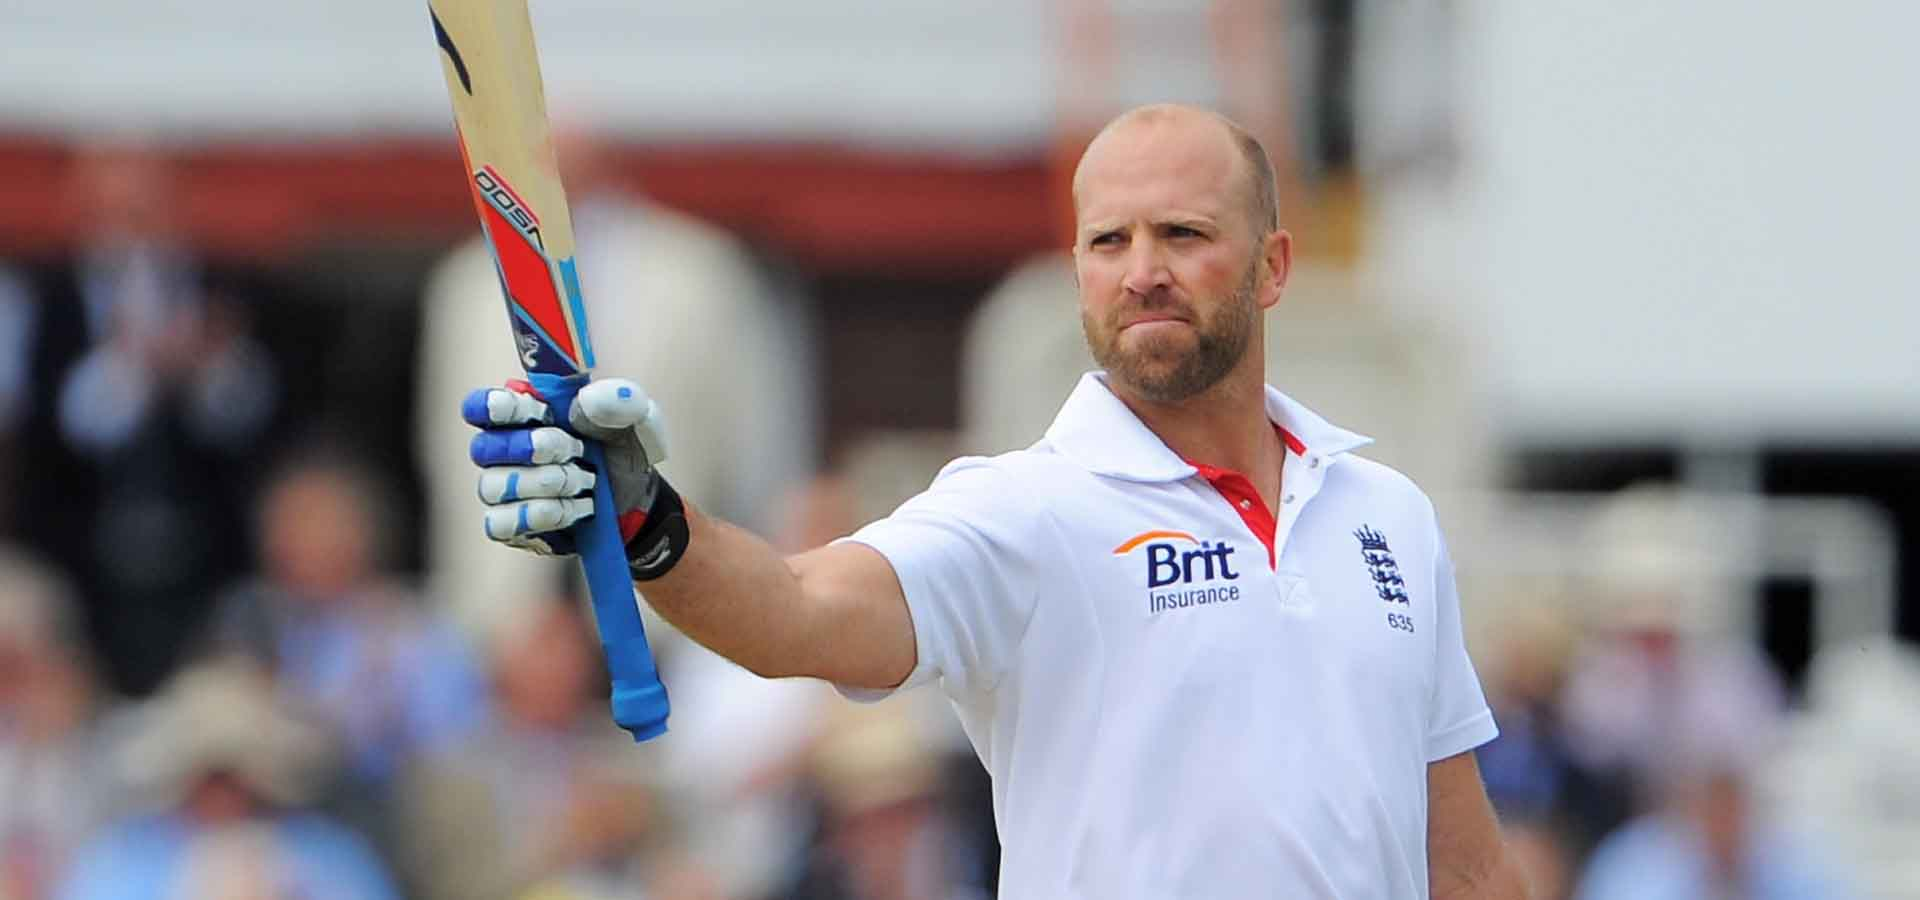 Matt Prior scores a century at Lord's